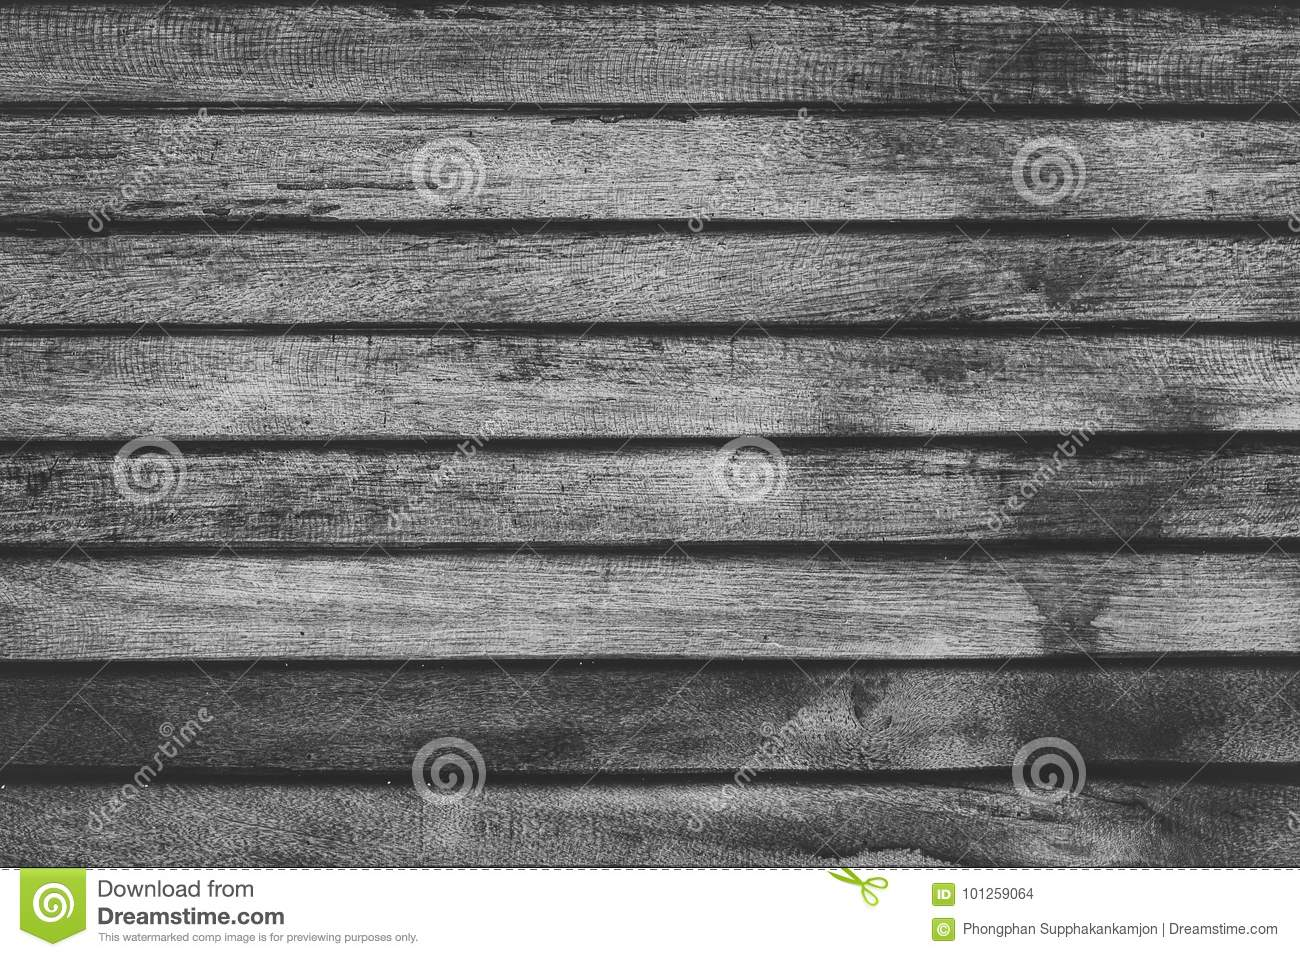 Abstract rustic surface dark wood table texture background. Close up rustic dark wall made of white wood table planks texture. Ru